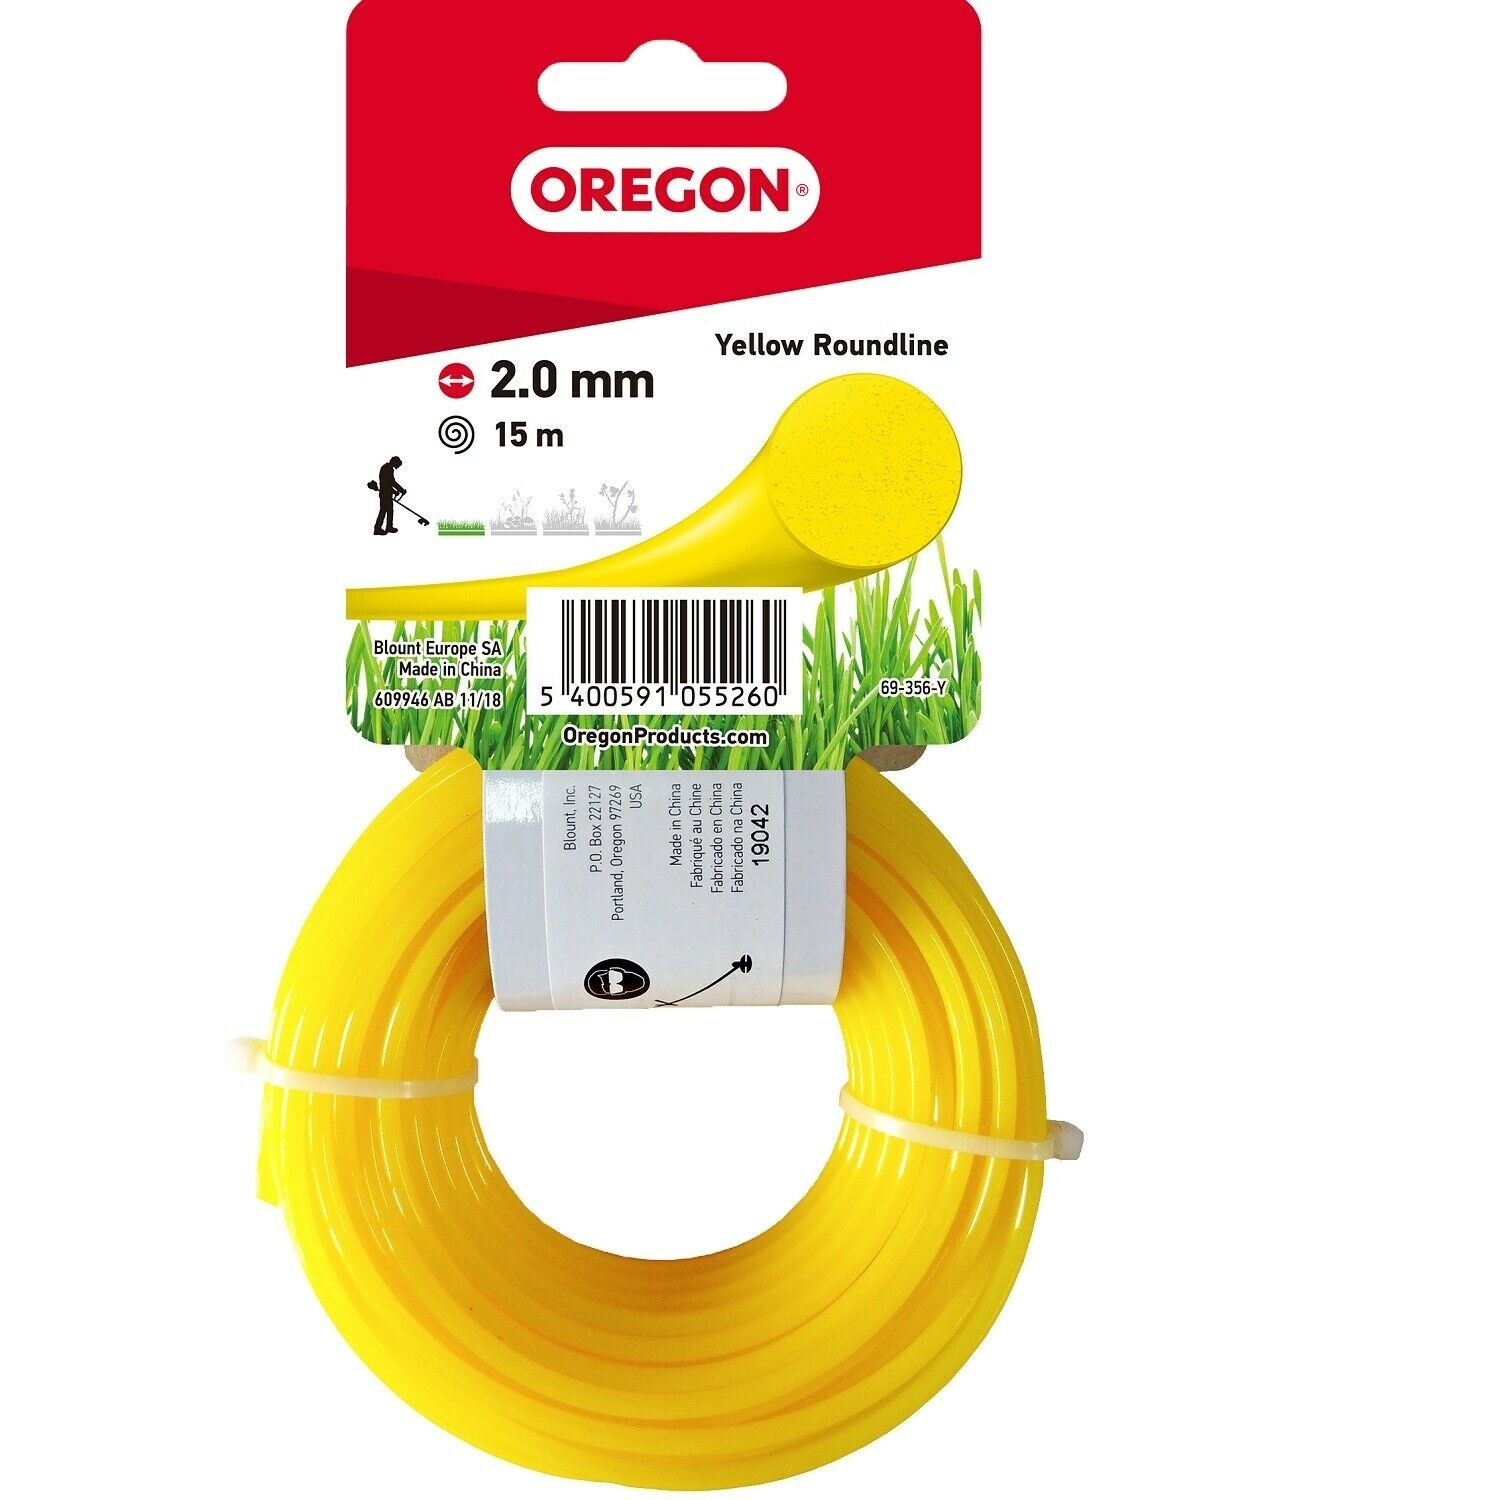 Oregon 2.0mm x 15m Yellow Roundline